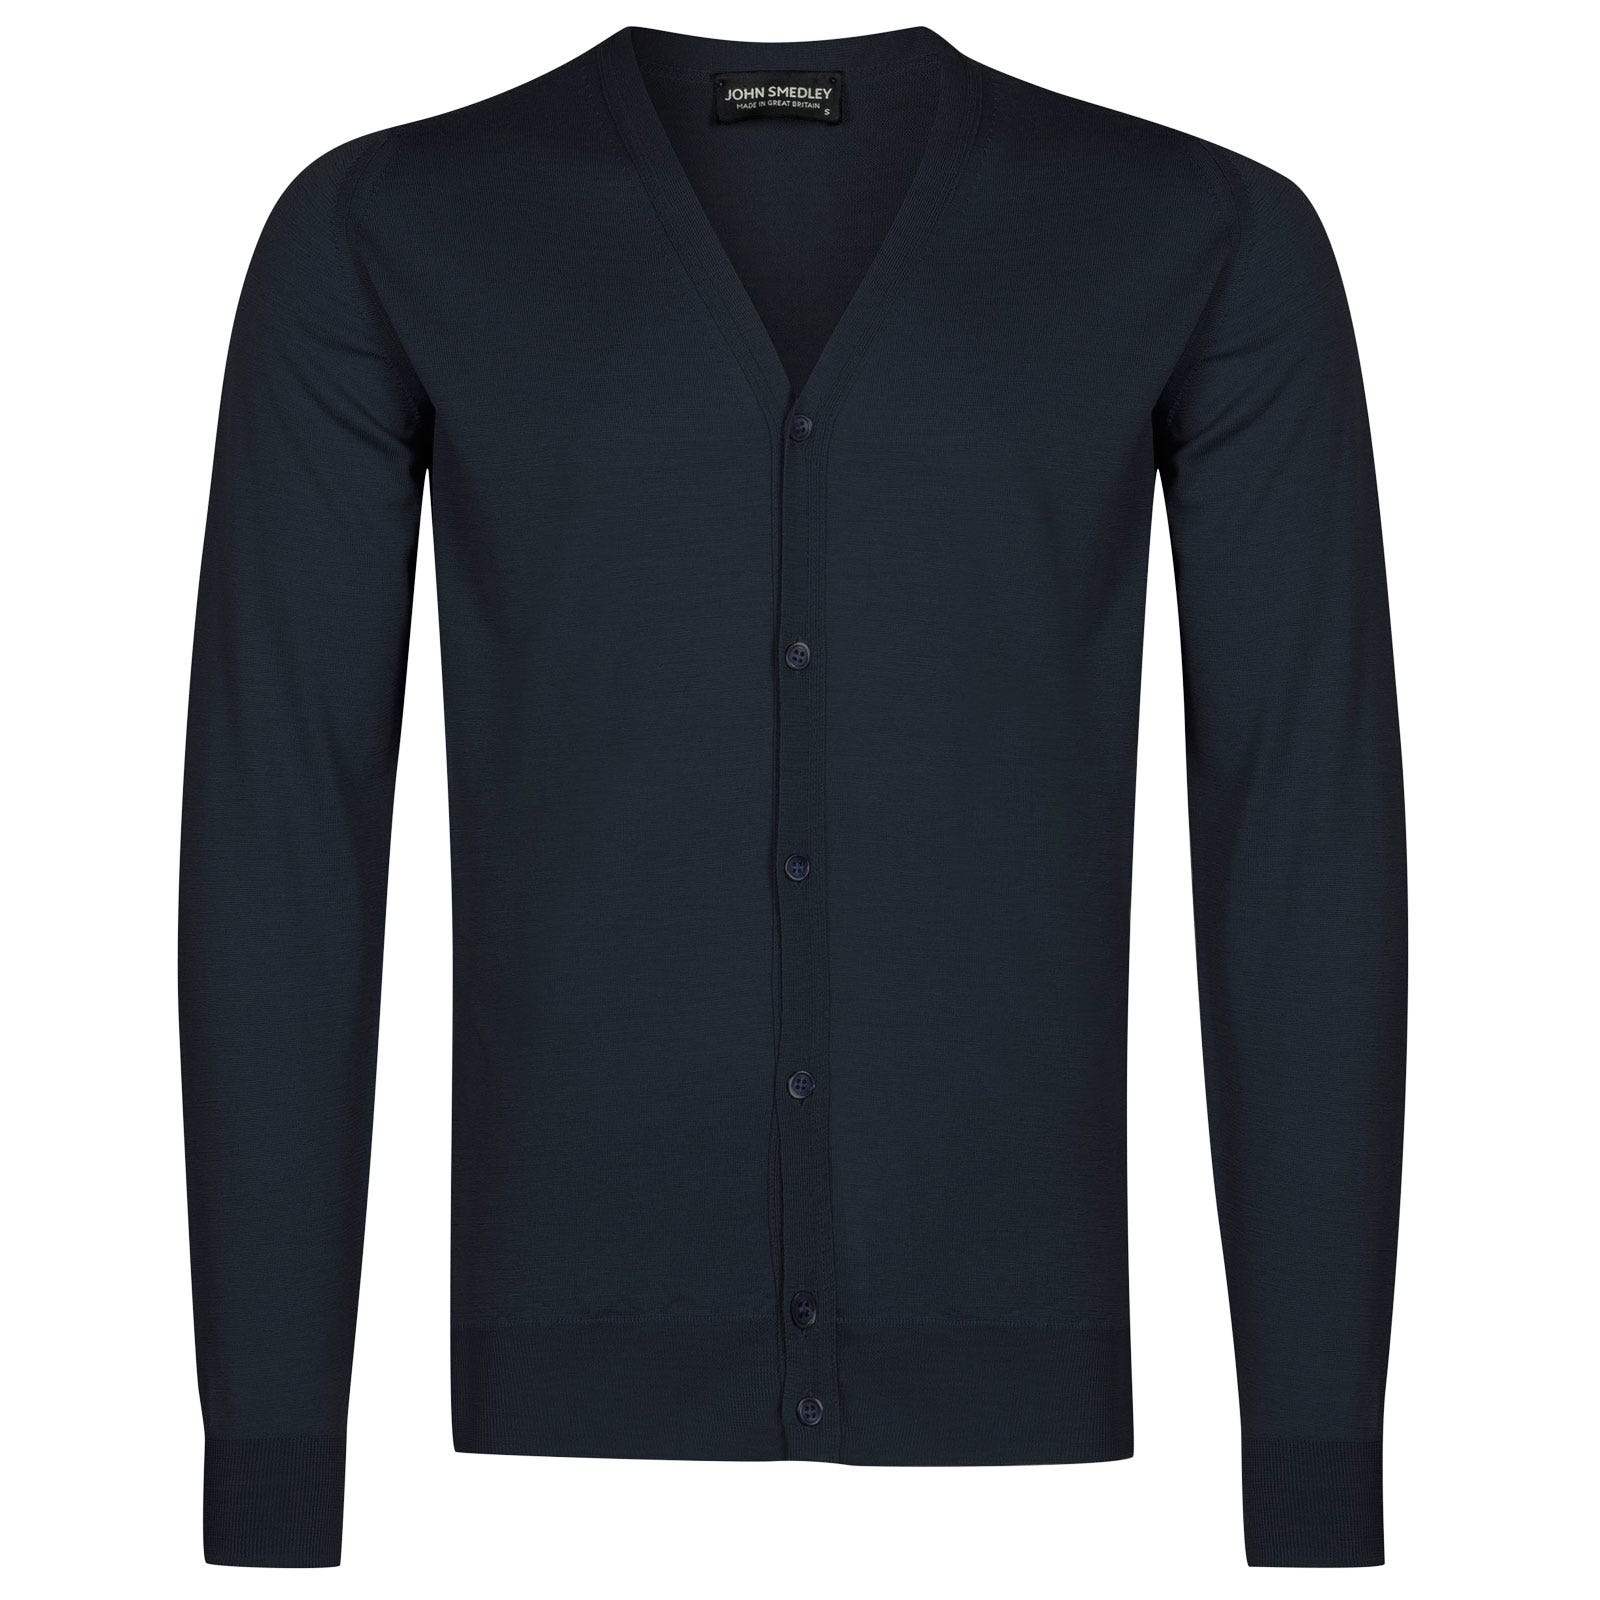 John Smedley petworth Merino Wool Cardigan in Midnight-XL